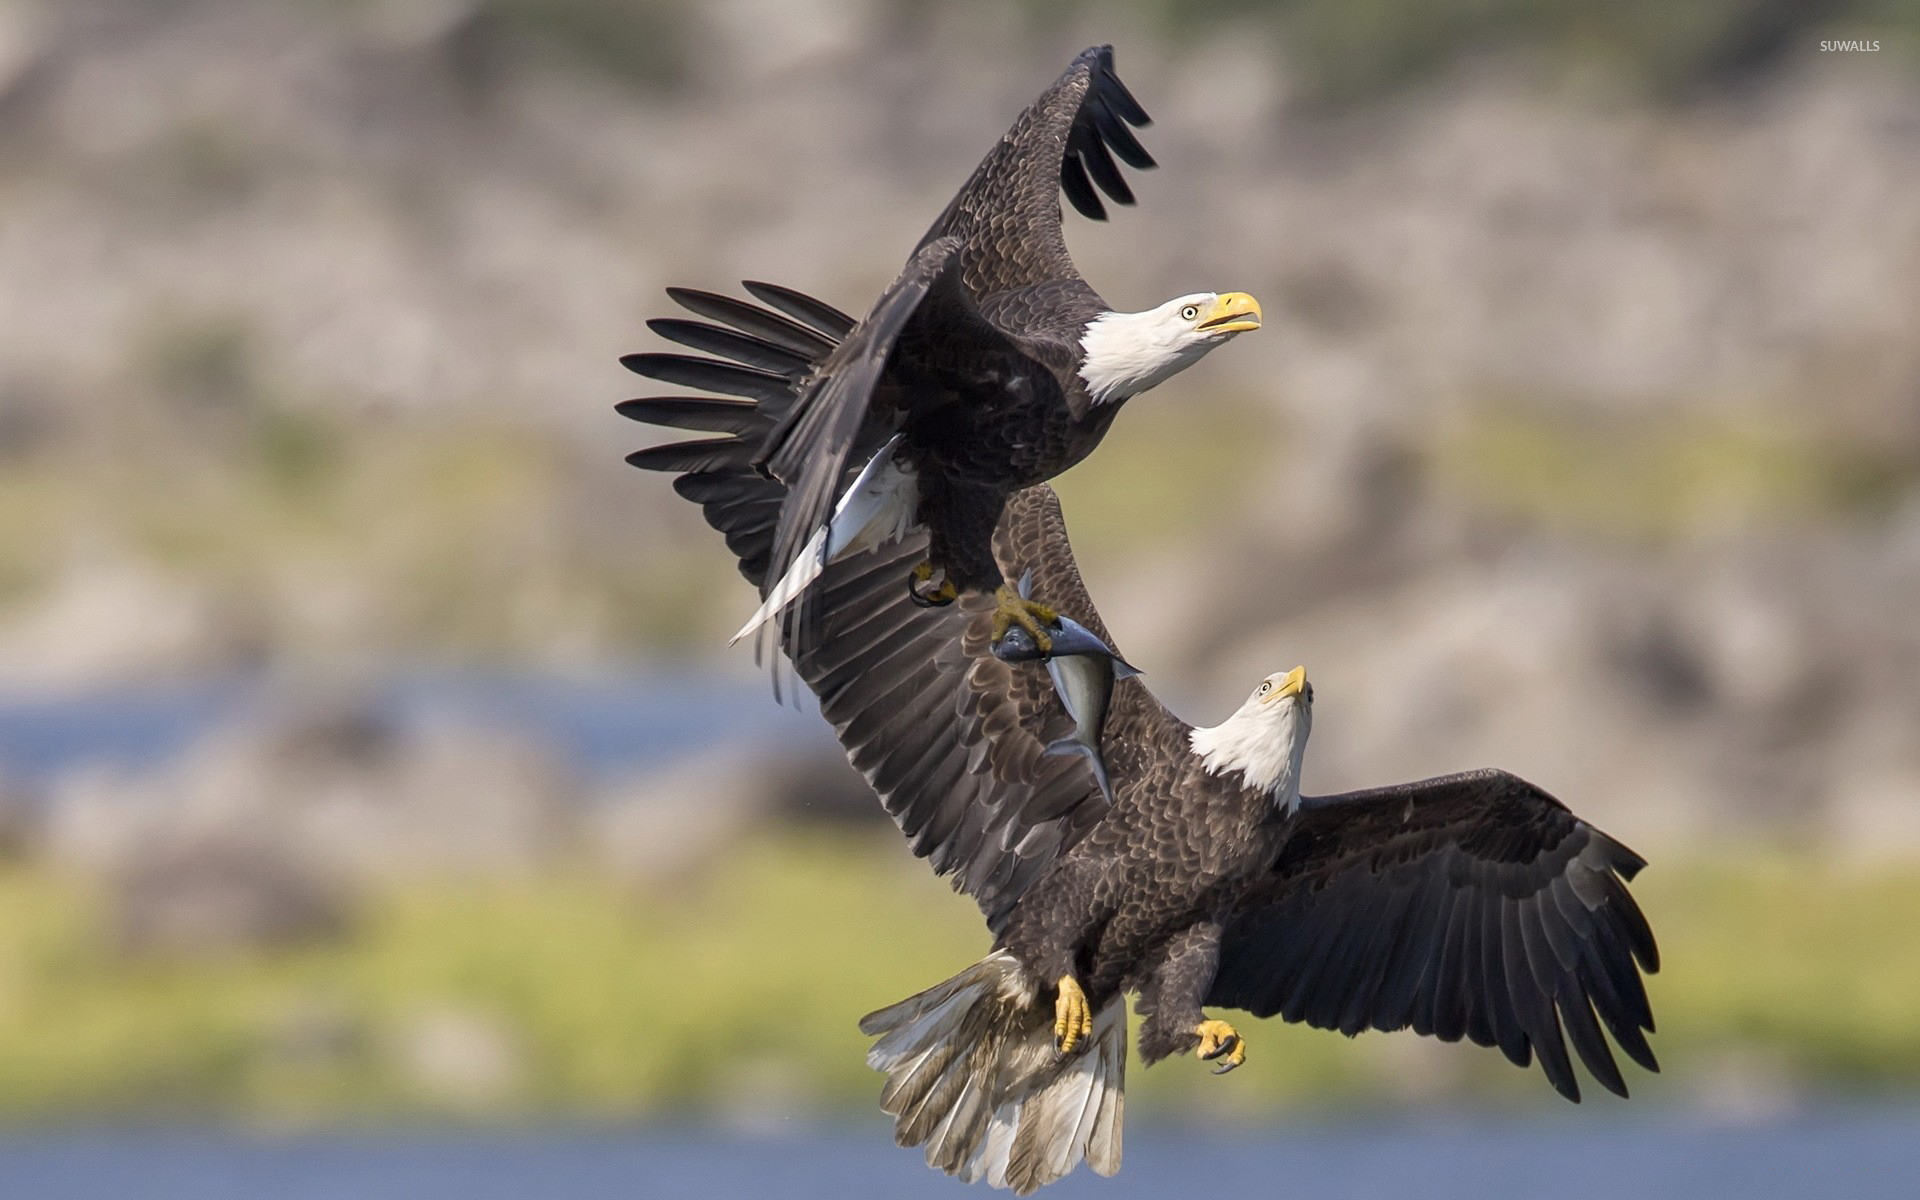 bald eagle with a fish in its claws wallpaper animal wallpapersbald eagle with a fish in its claws wallpaper